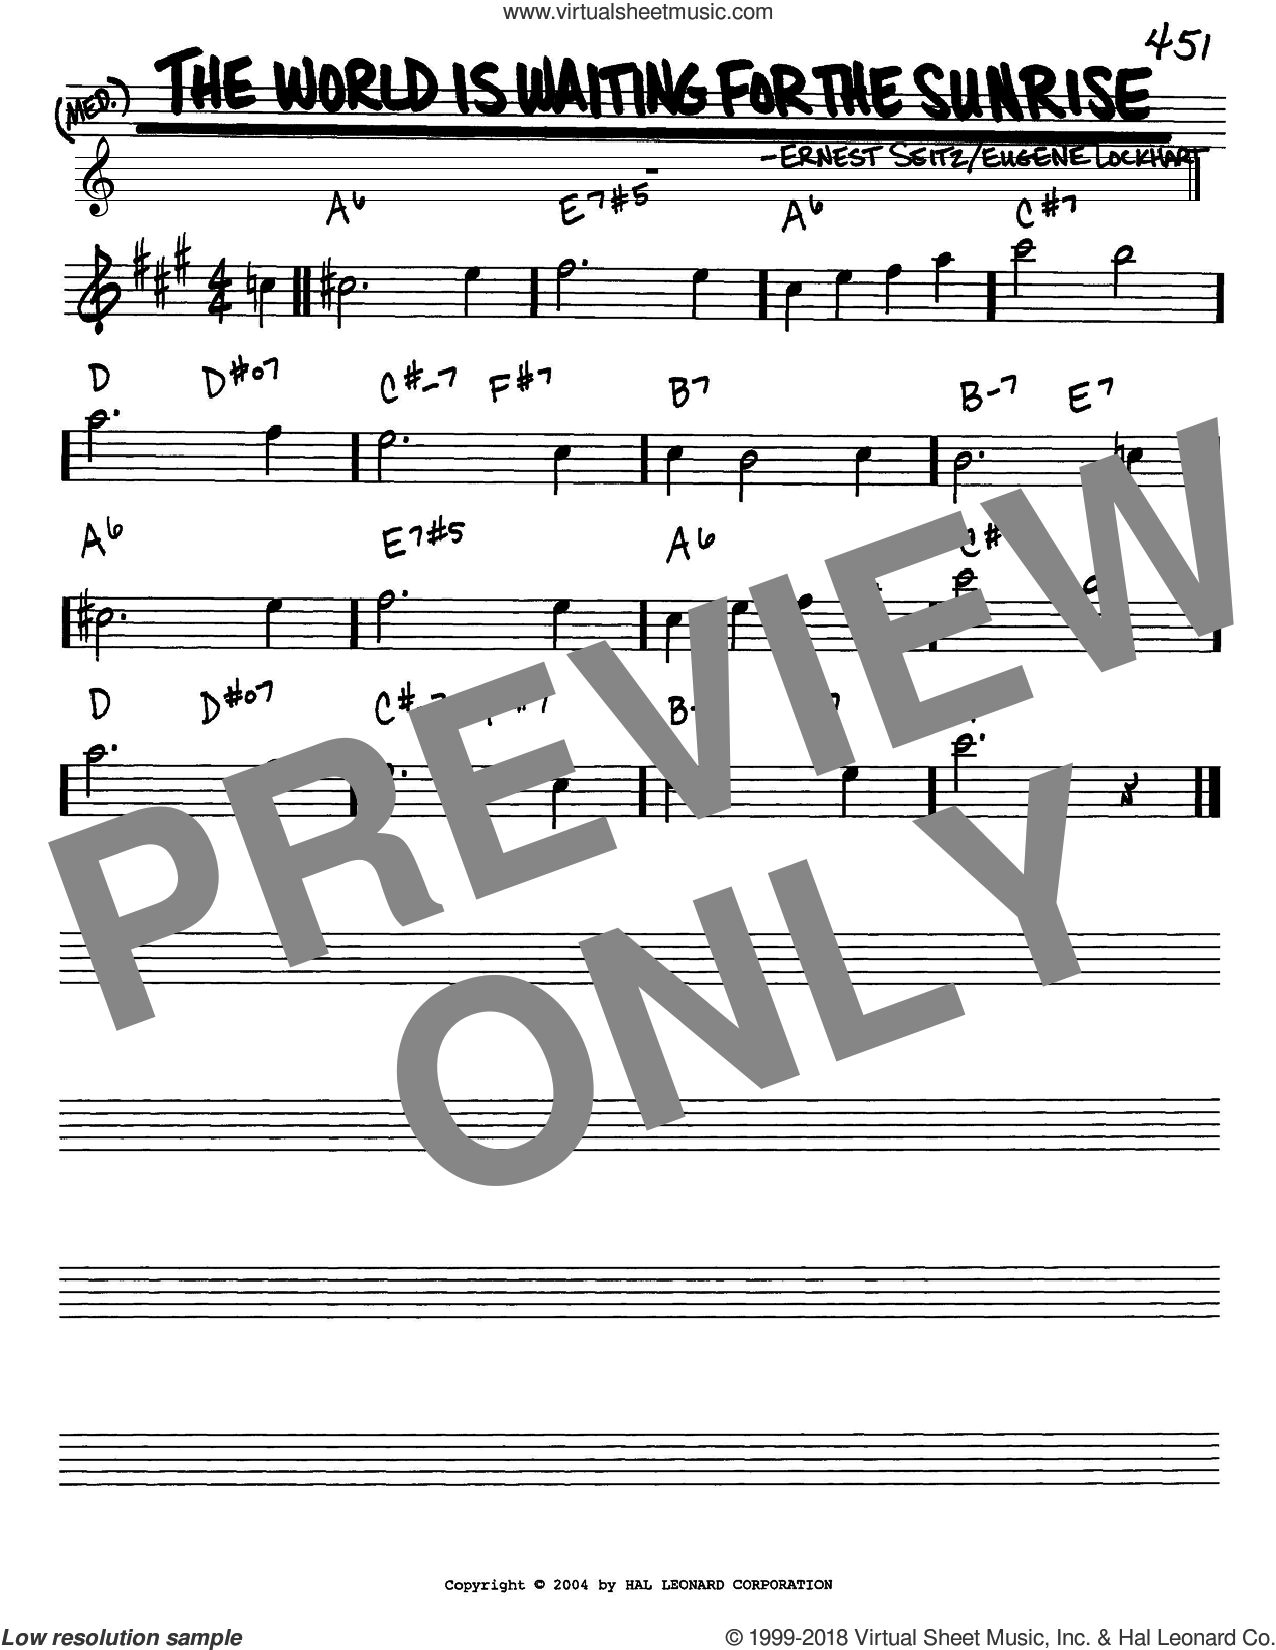 The World Is Waiting For The Sunrise sheet music for voice and other instruments (in Eb) by Eugene Lockhart and Ernest Seitz, intermediate. Score Image Preview.